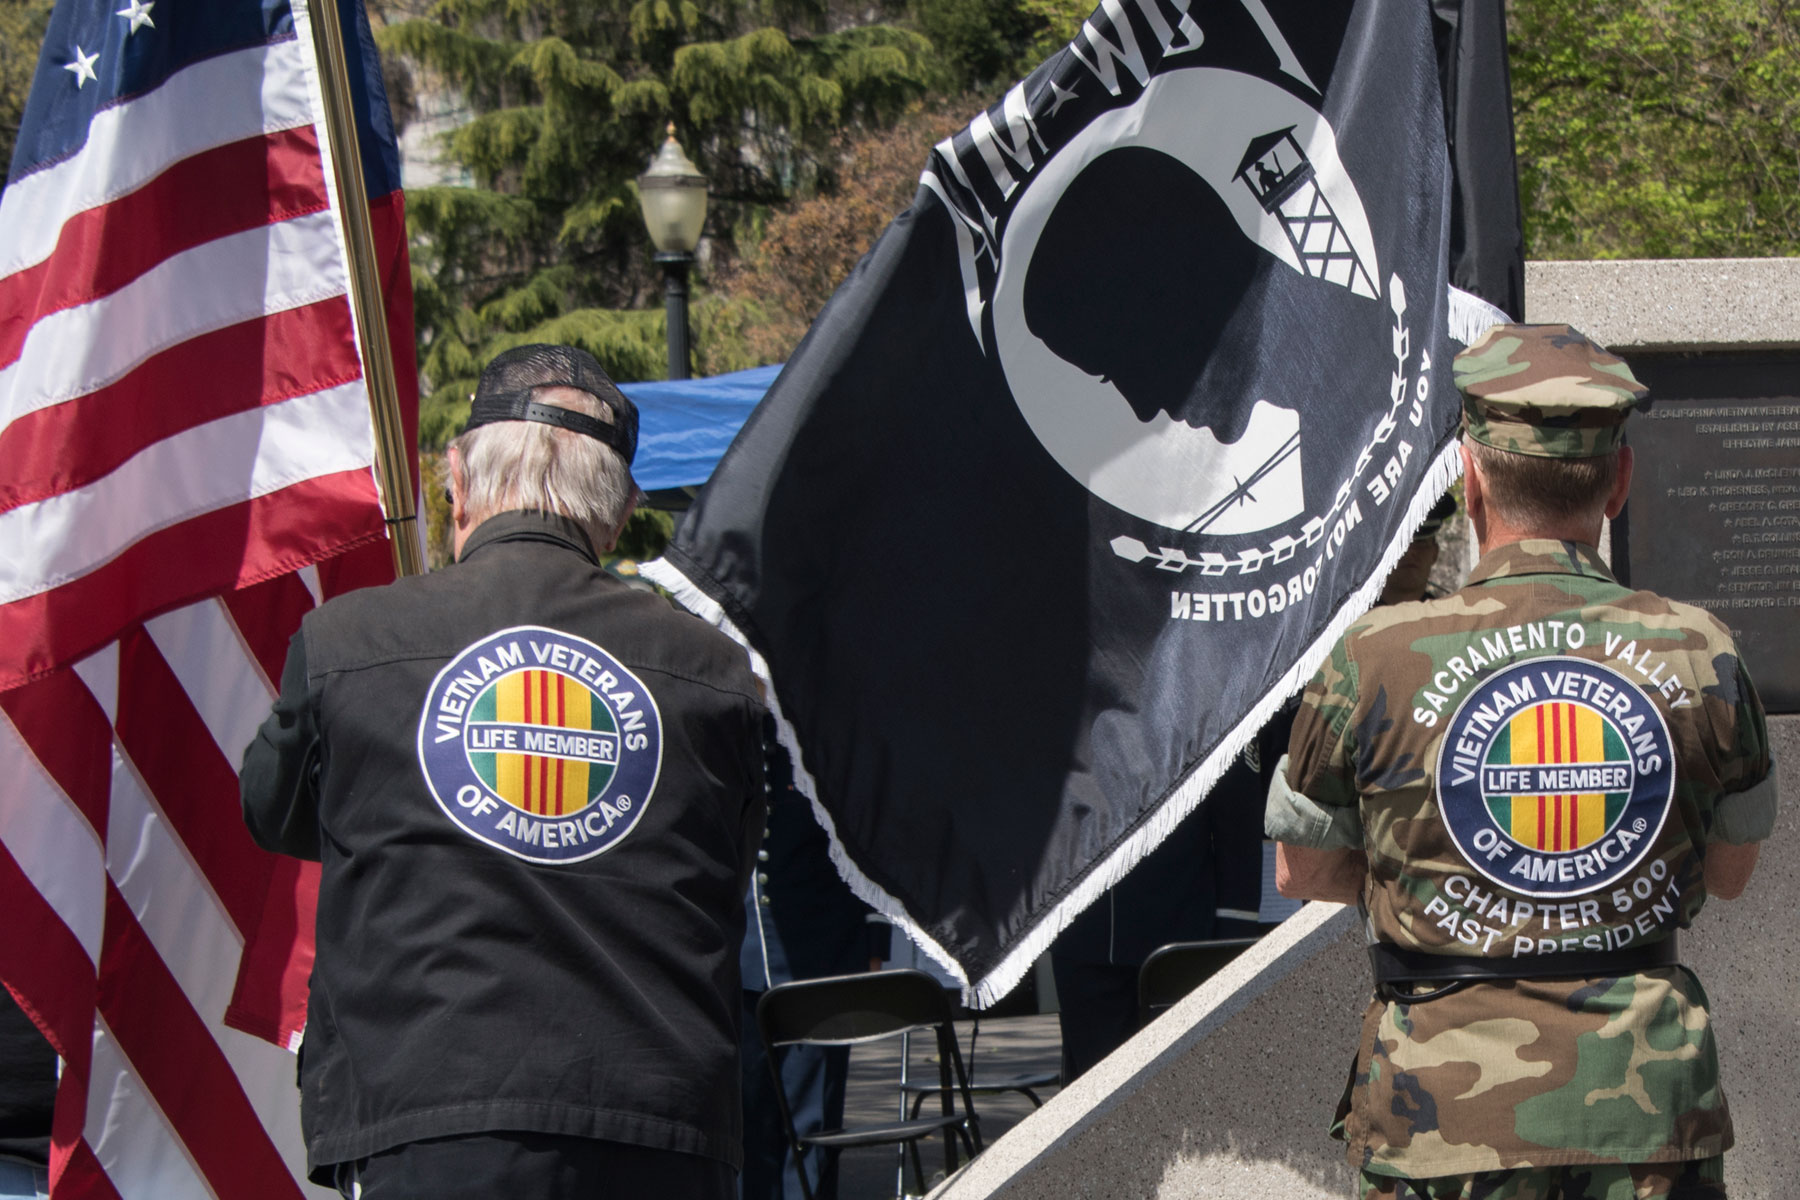 Members of the Vietnam Veterans of America, Sacramento Valley Chapter 500, retire the colors during the Vietnam War Veterans Day and 50th Commemoration ceremony, March 29, 2018 at the State Capitol in Sacramento, Calif. (U.S. Air Force Photo by Heide Couch)